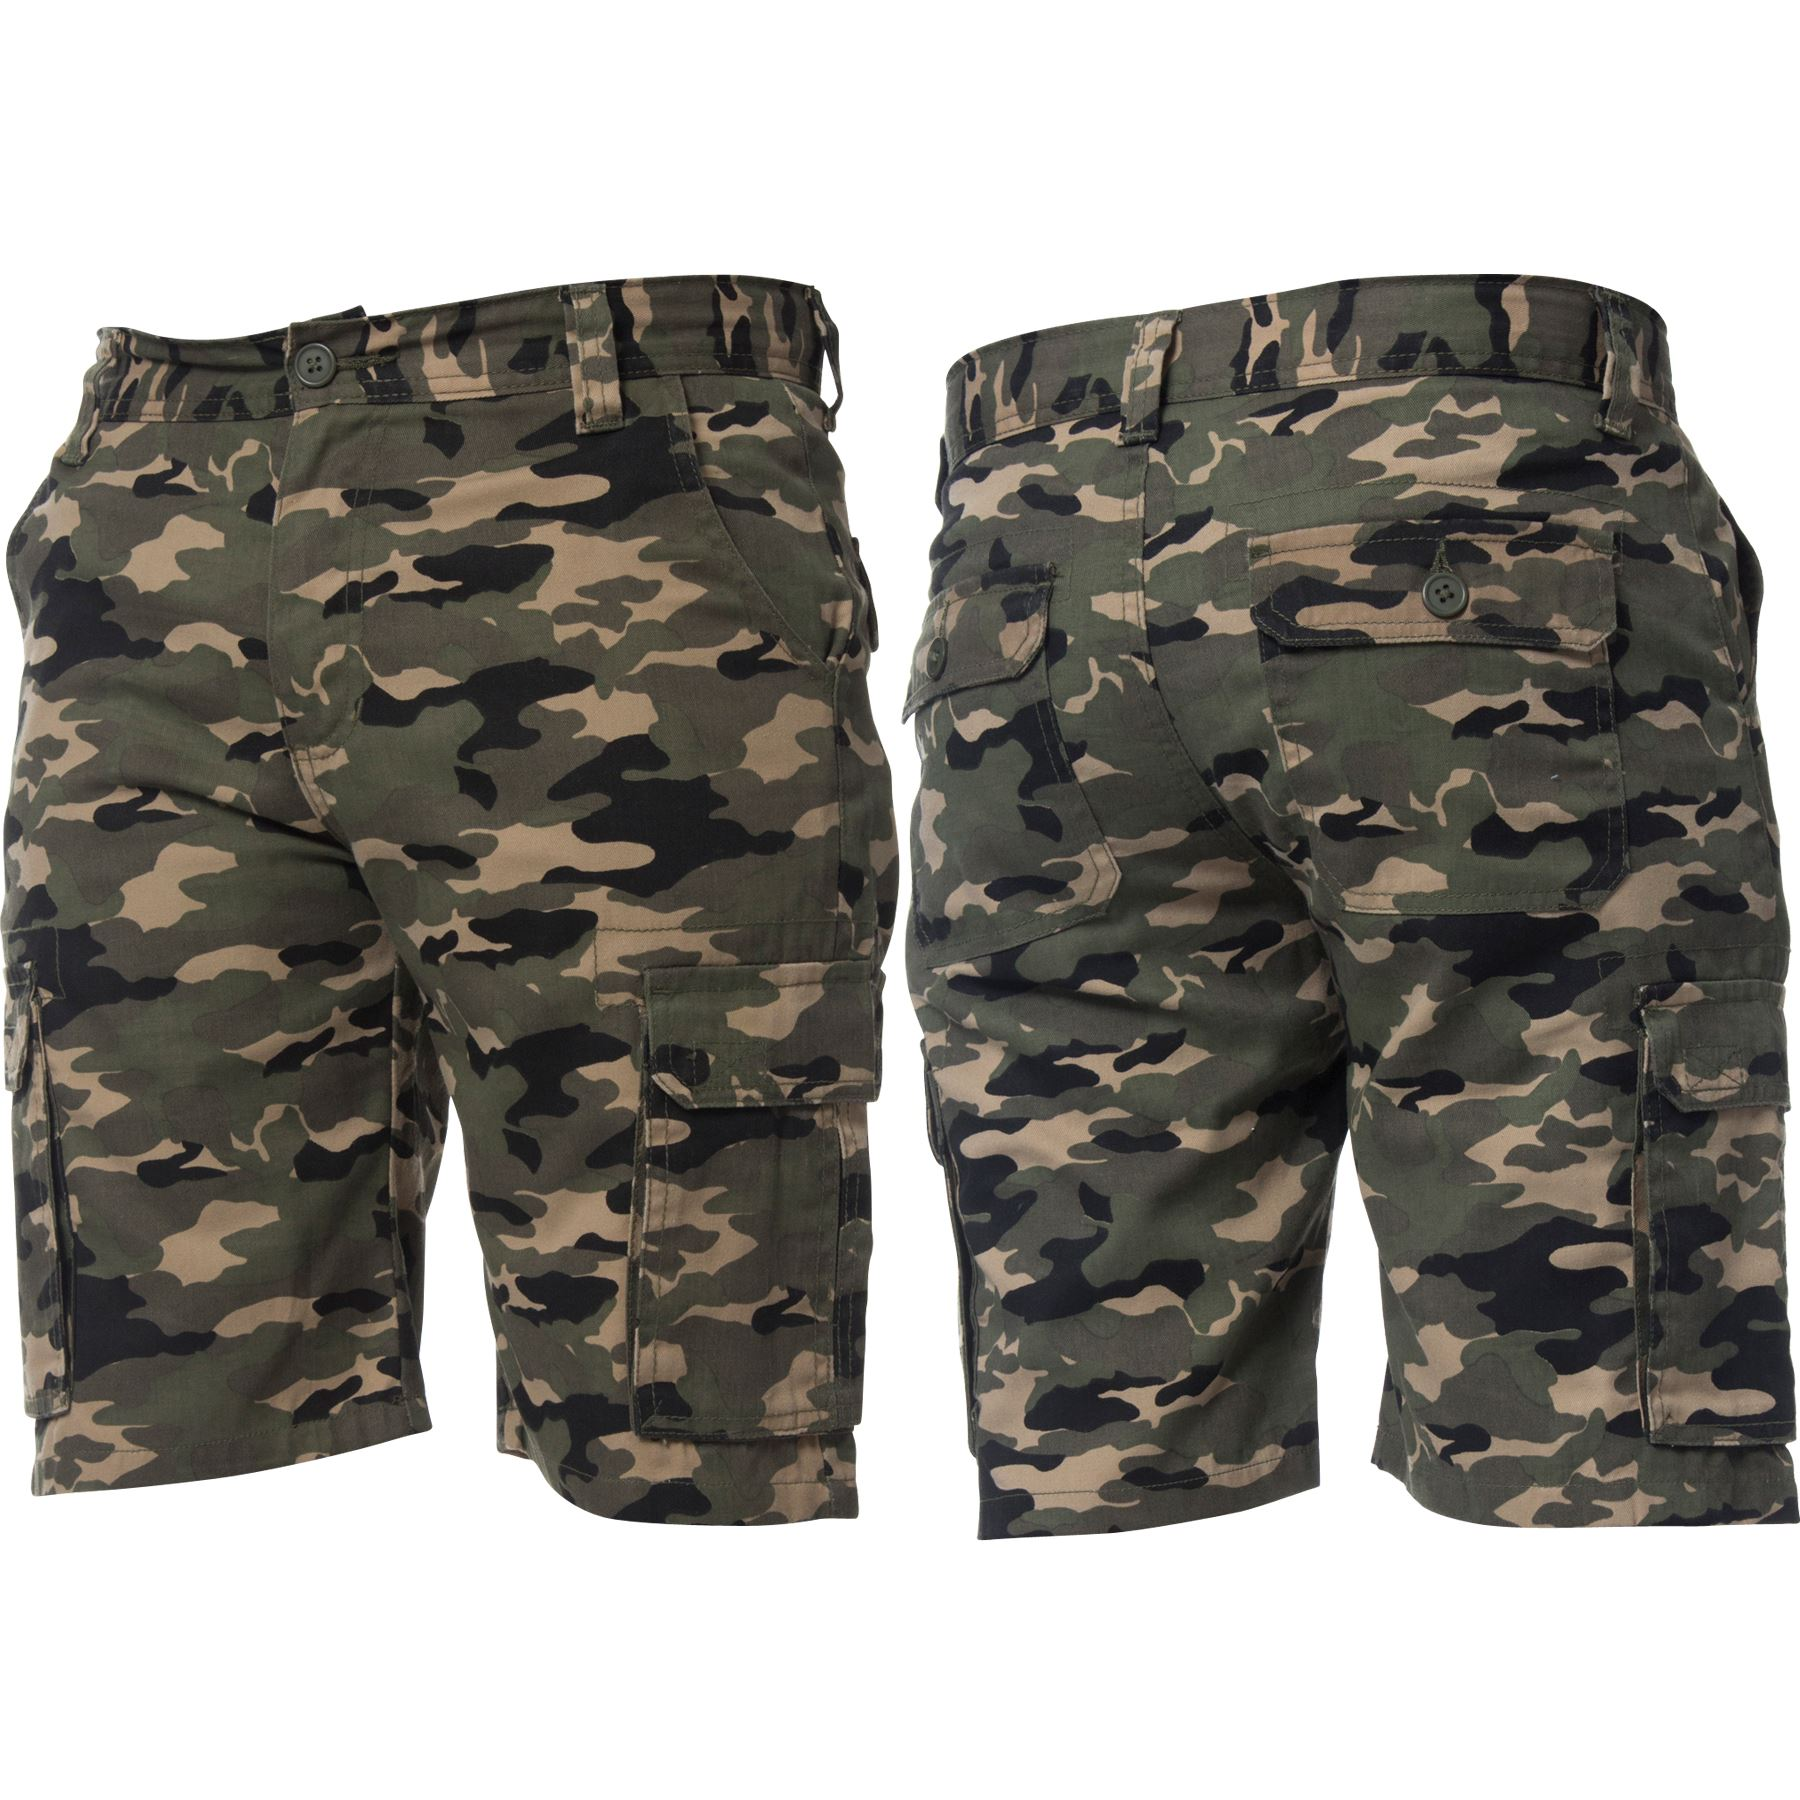 Kruze-Jeans-Mens-Army-Combat-Shorts-Camouflage-Cargo-Casual-Camo-Work-Half-Pants thumbnail 17